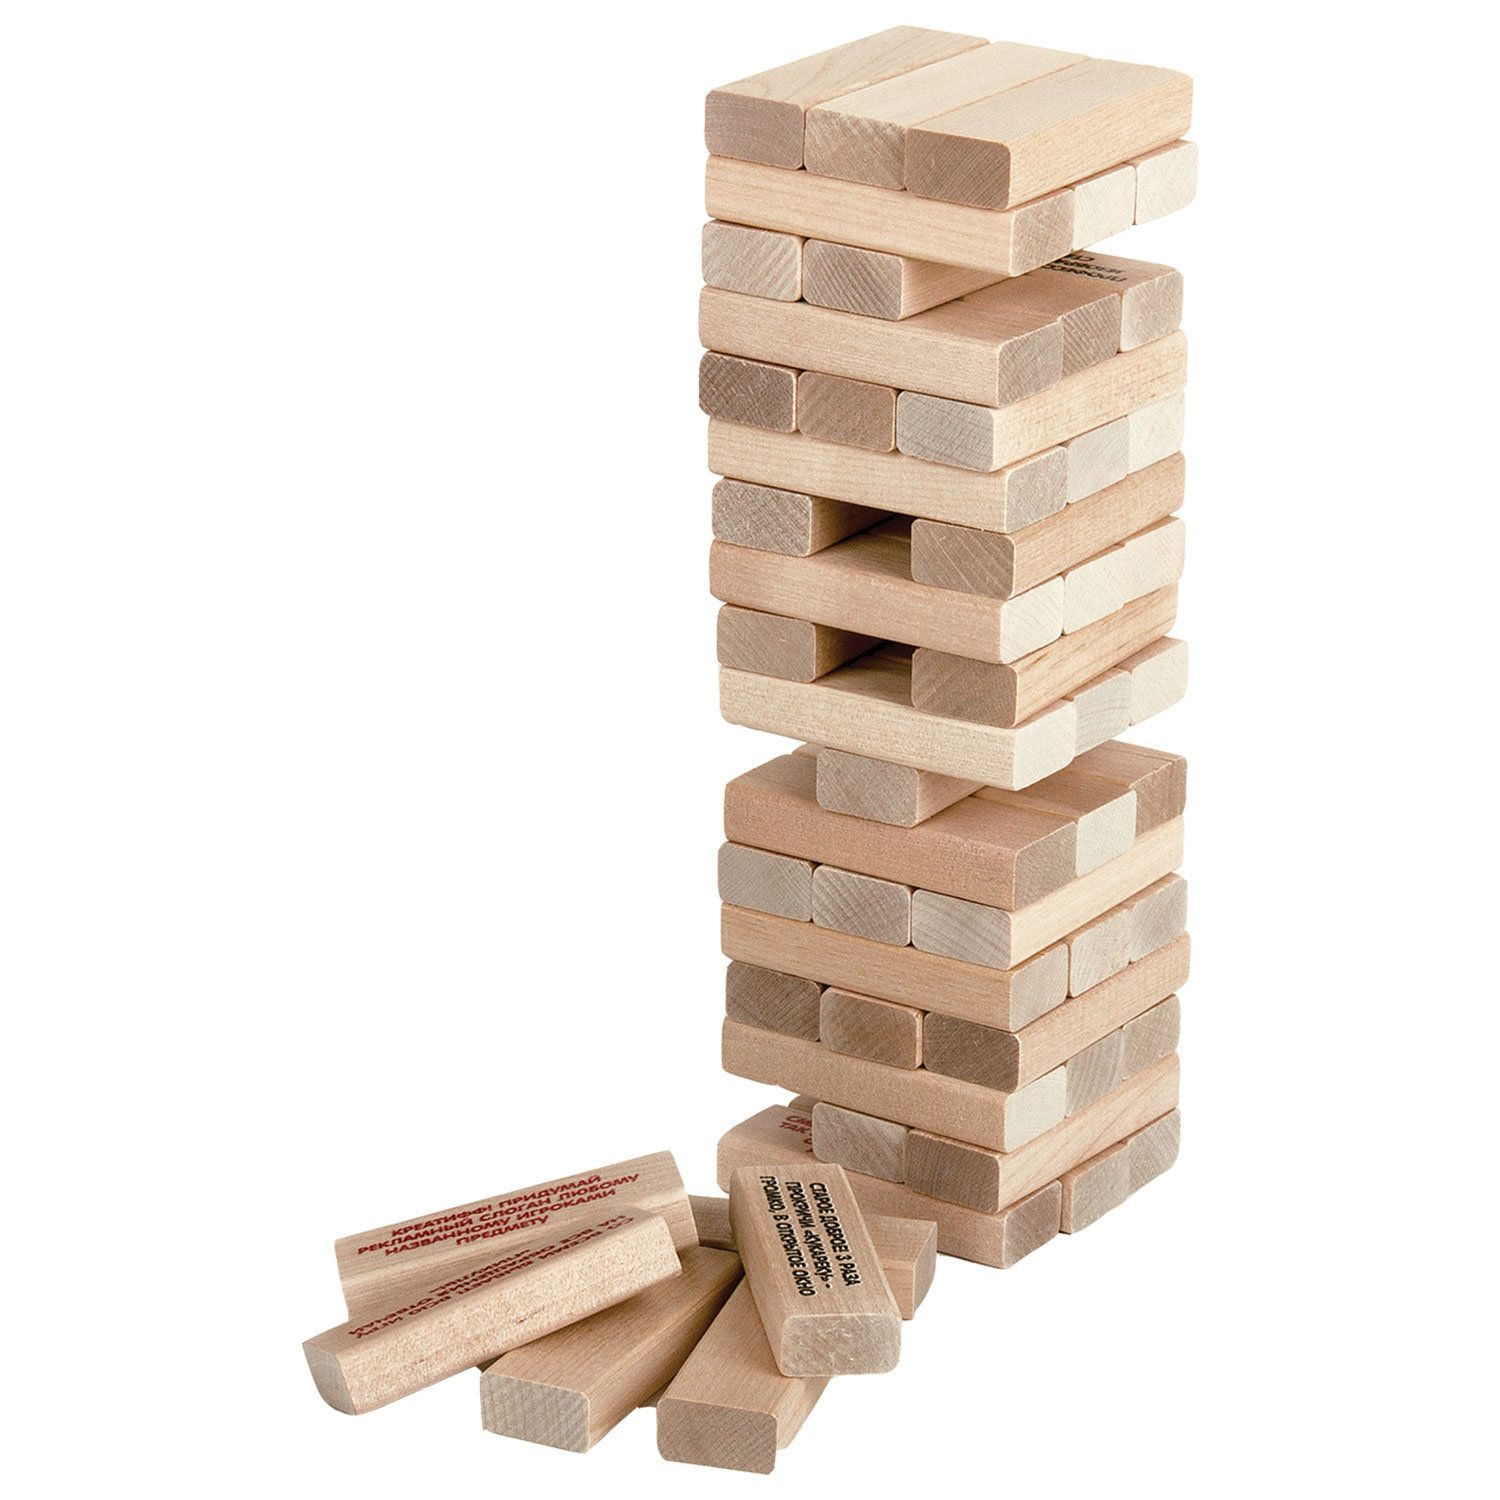 """Game table tower """"Bam-boom"""", unpainted wooden blocks with tasks, 10 KINGDOM"""